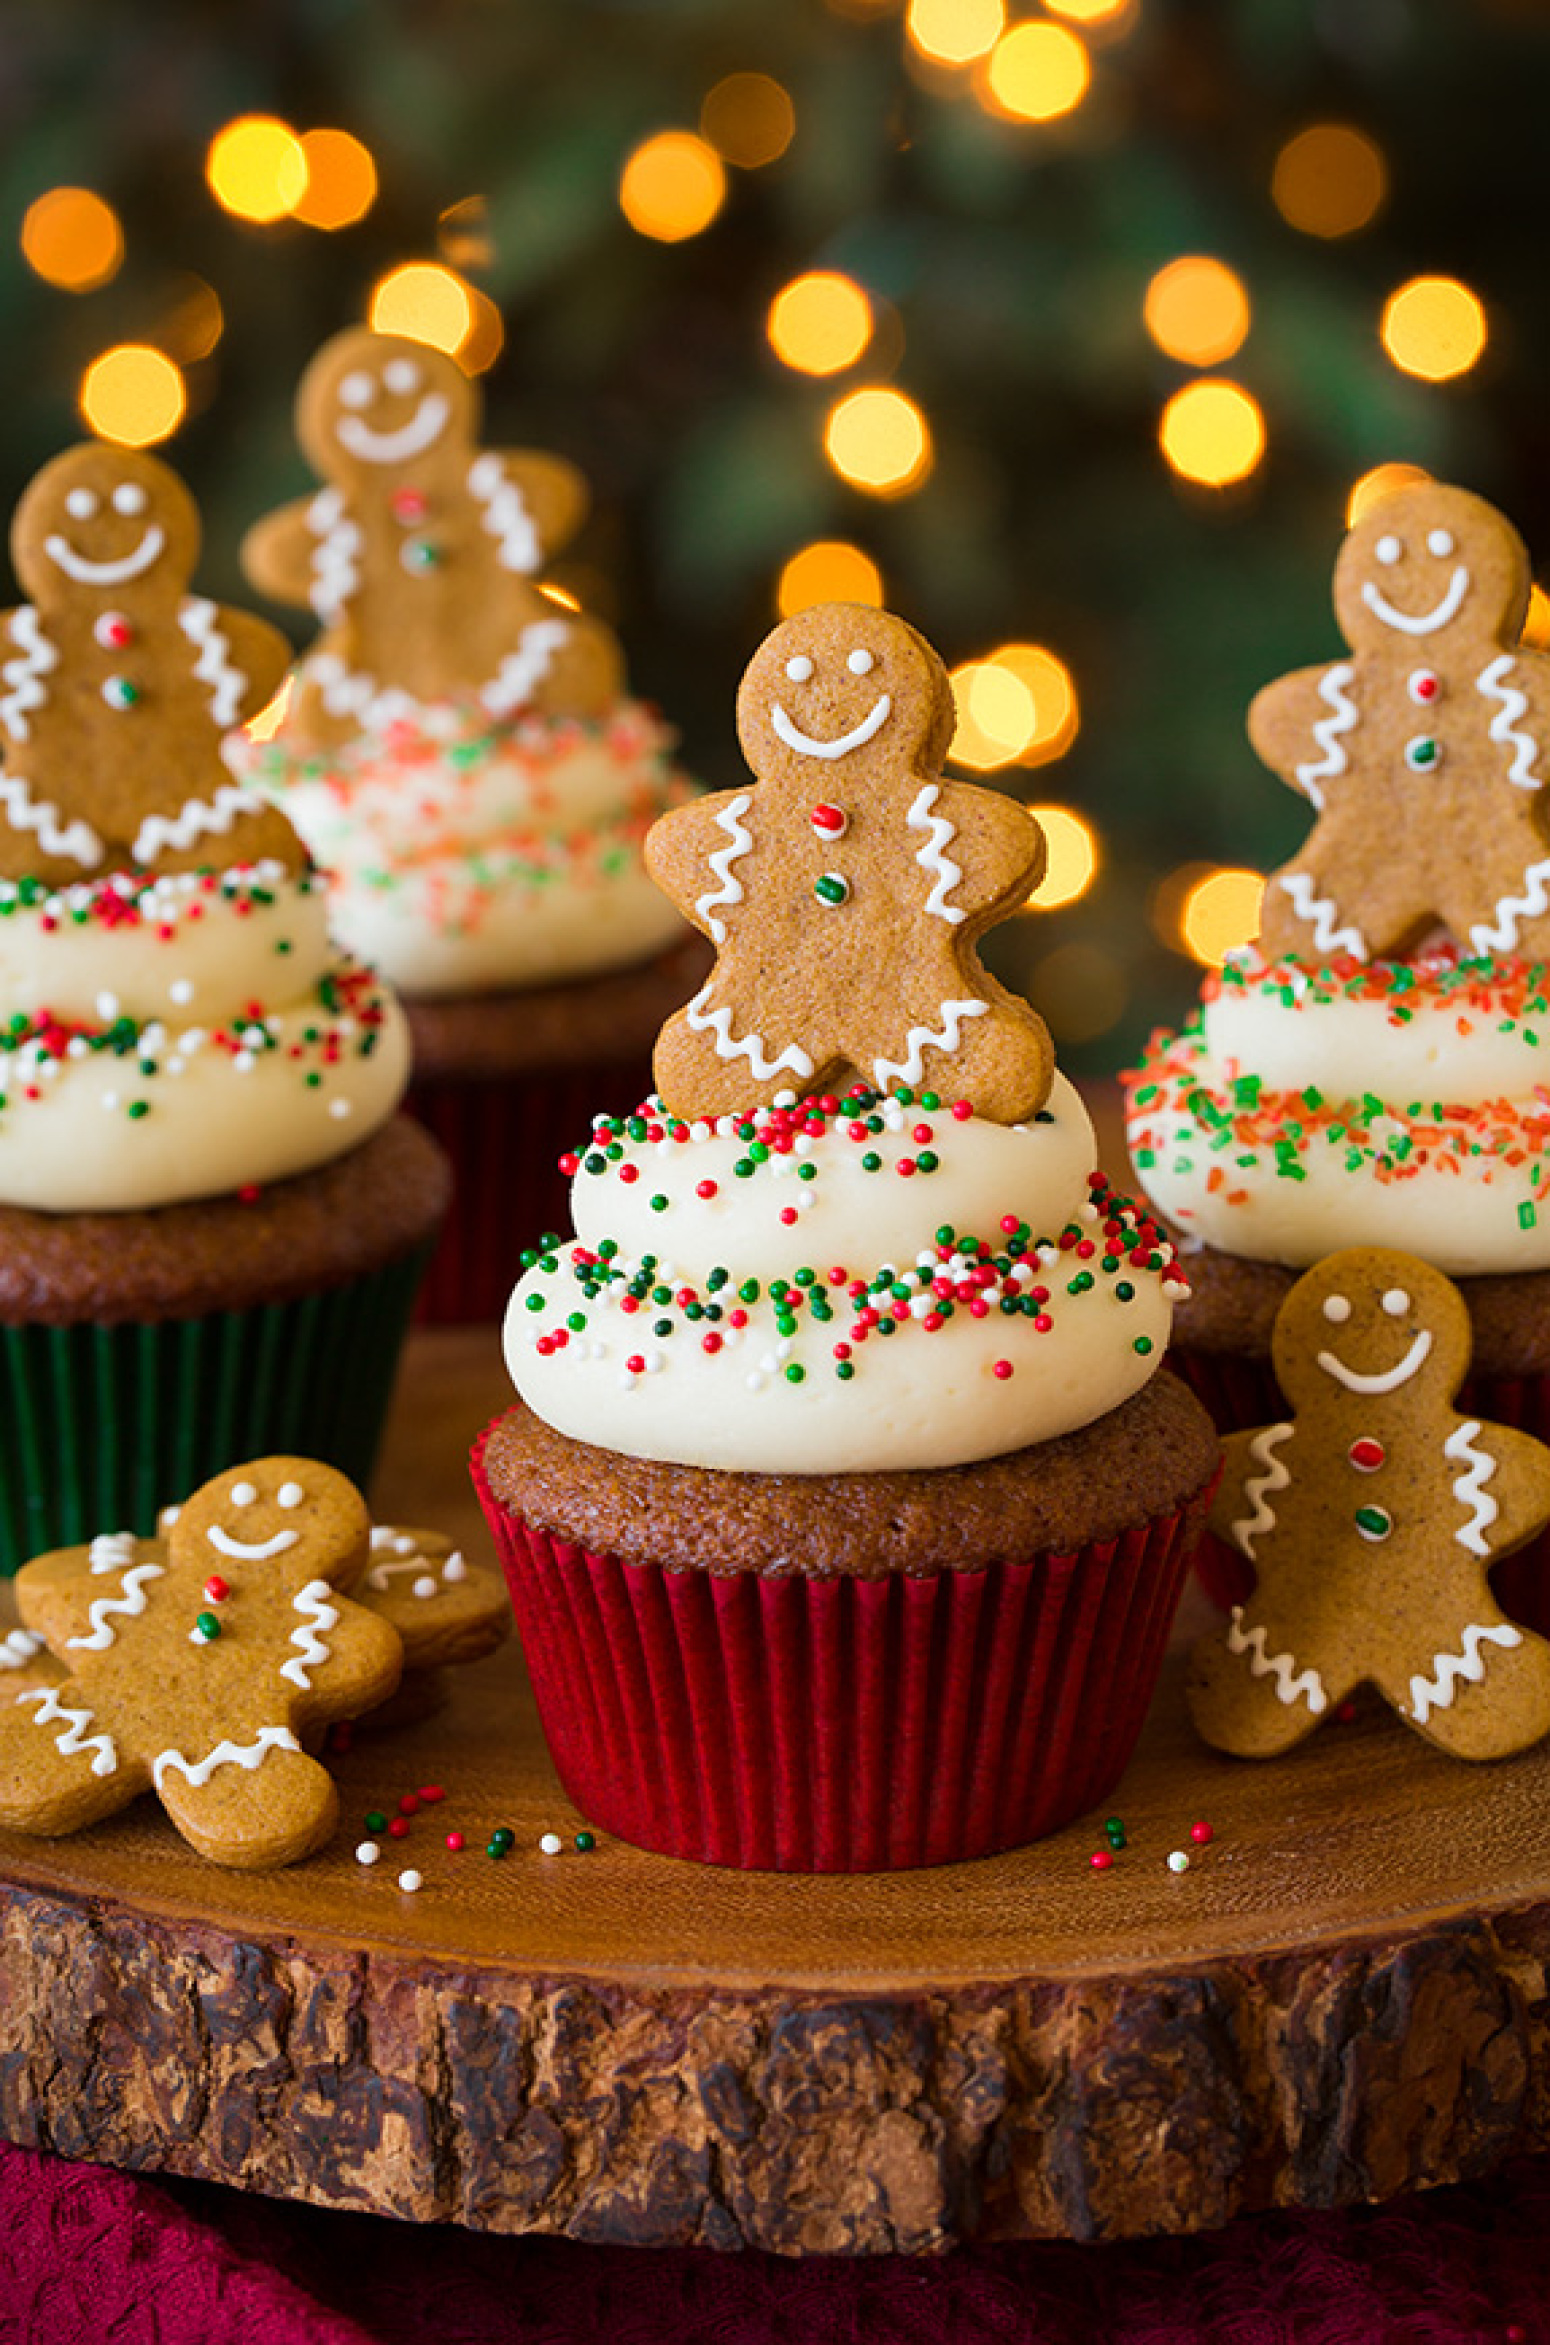 Gingerbread Cupcakes with Cream Cheese Frosting Recipe | Just A Pinch ...